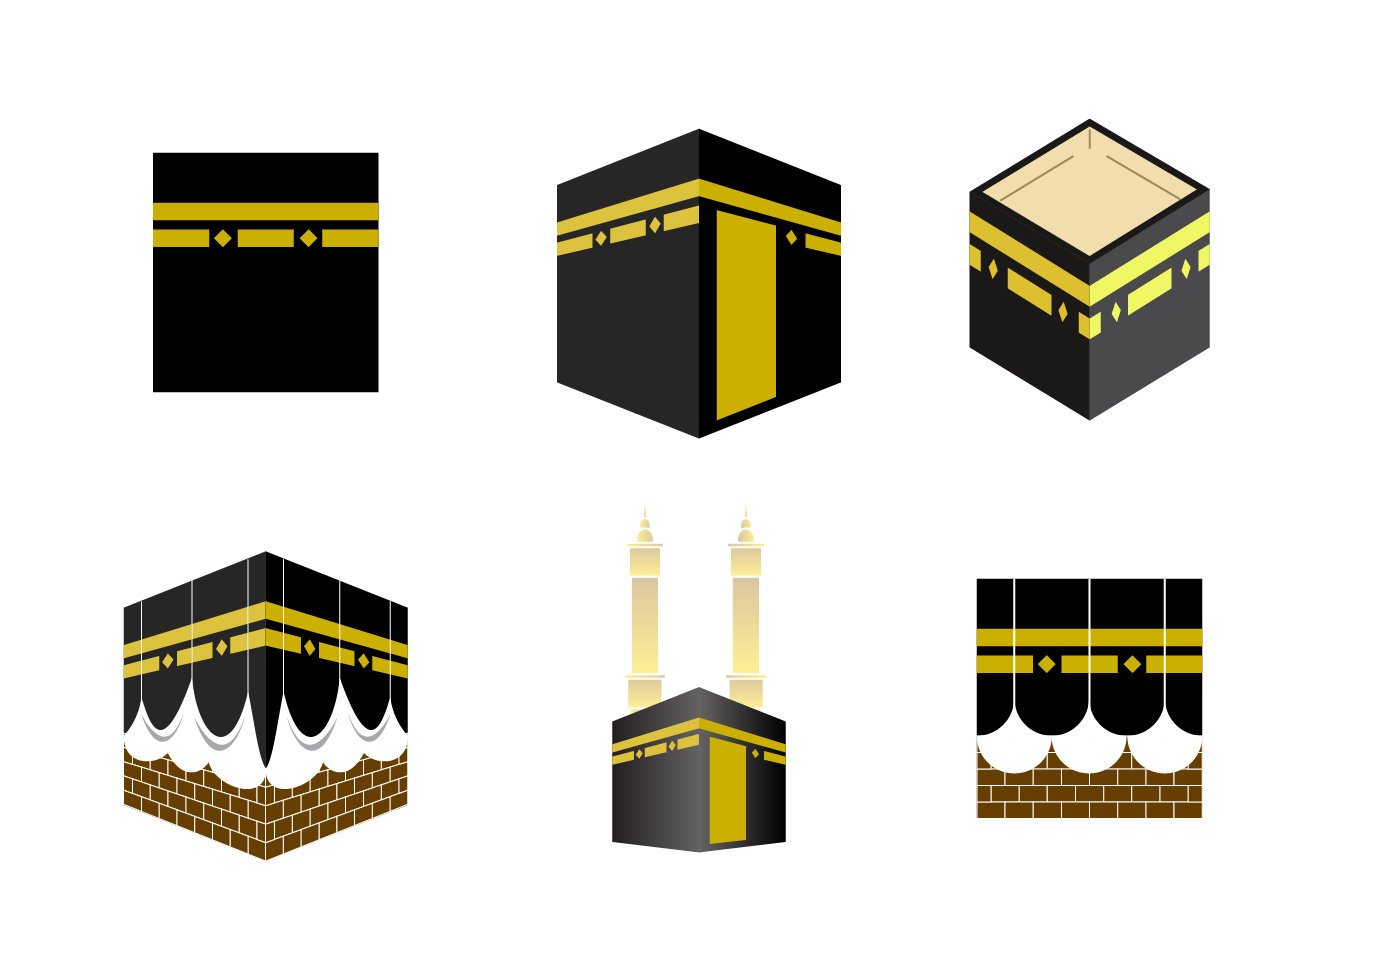 Makkah madina clipart vector download Makkah Free Vector Art - (3,765 Free Downloads) vector download